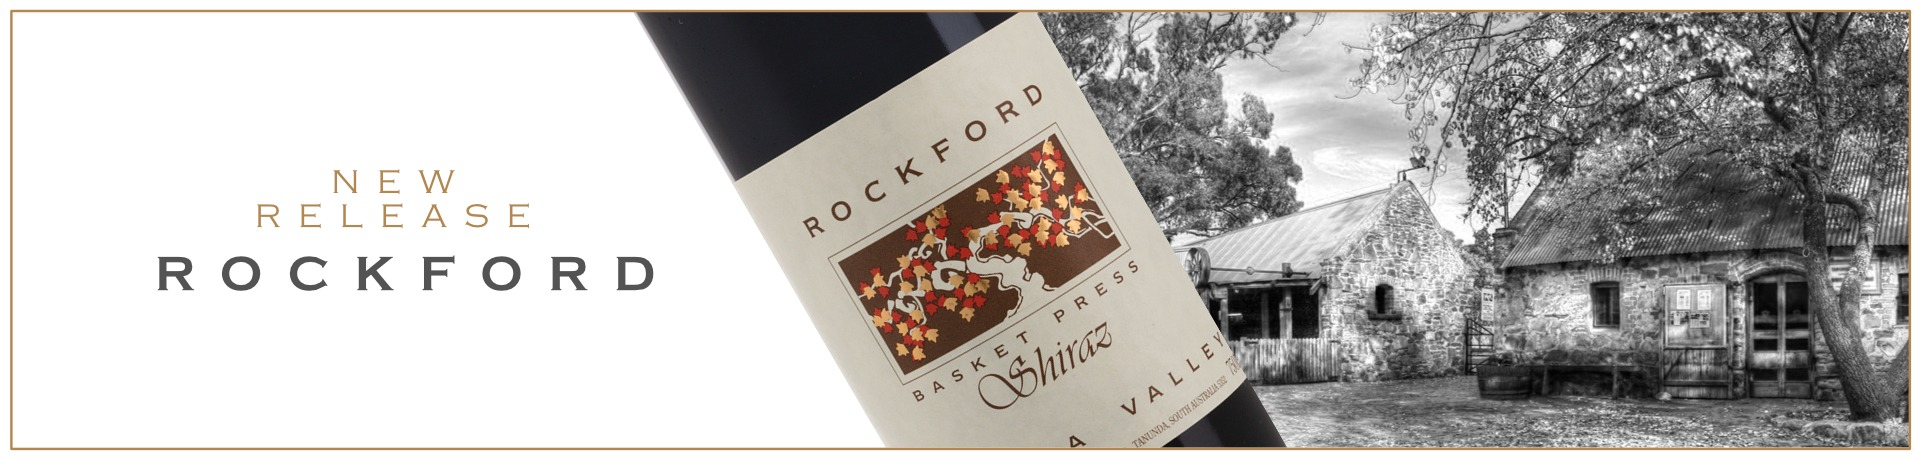 New Release Rockford Wines